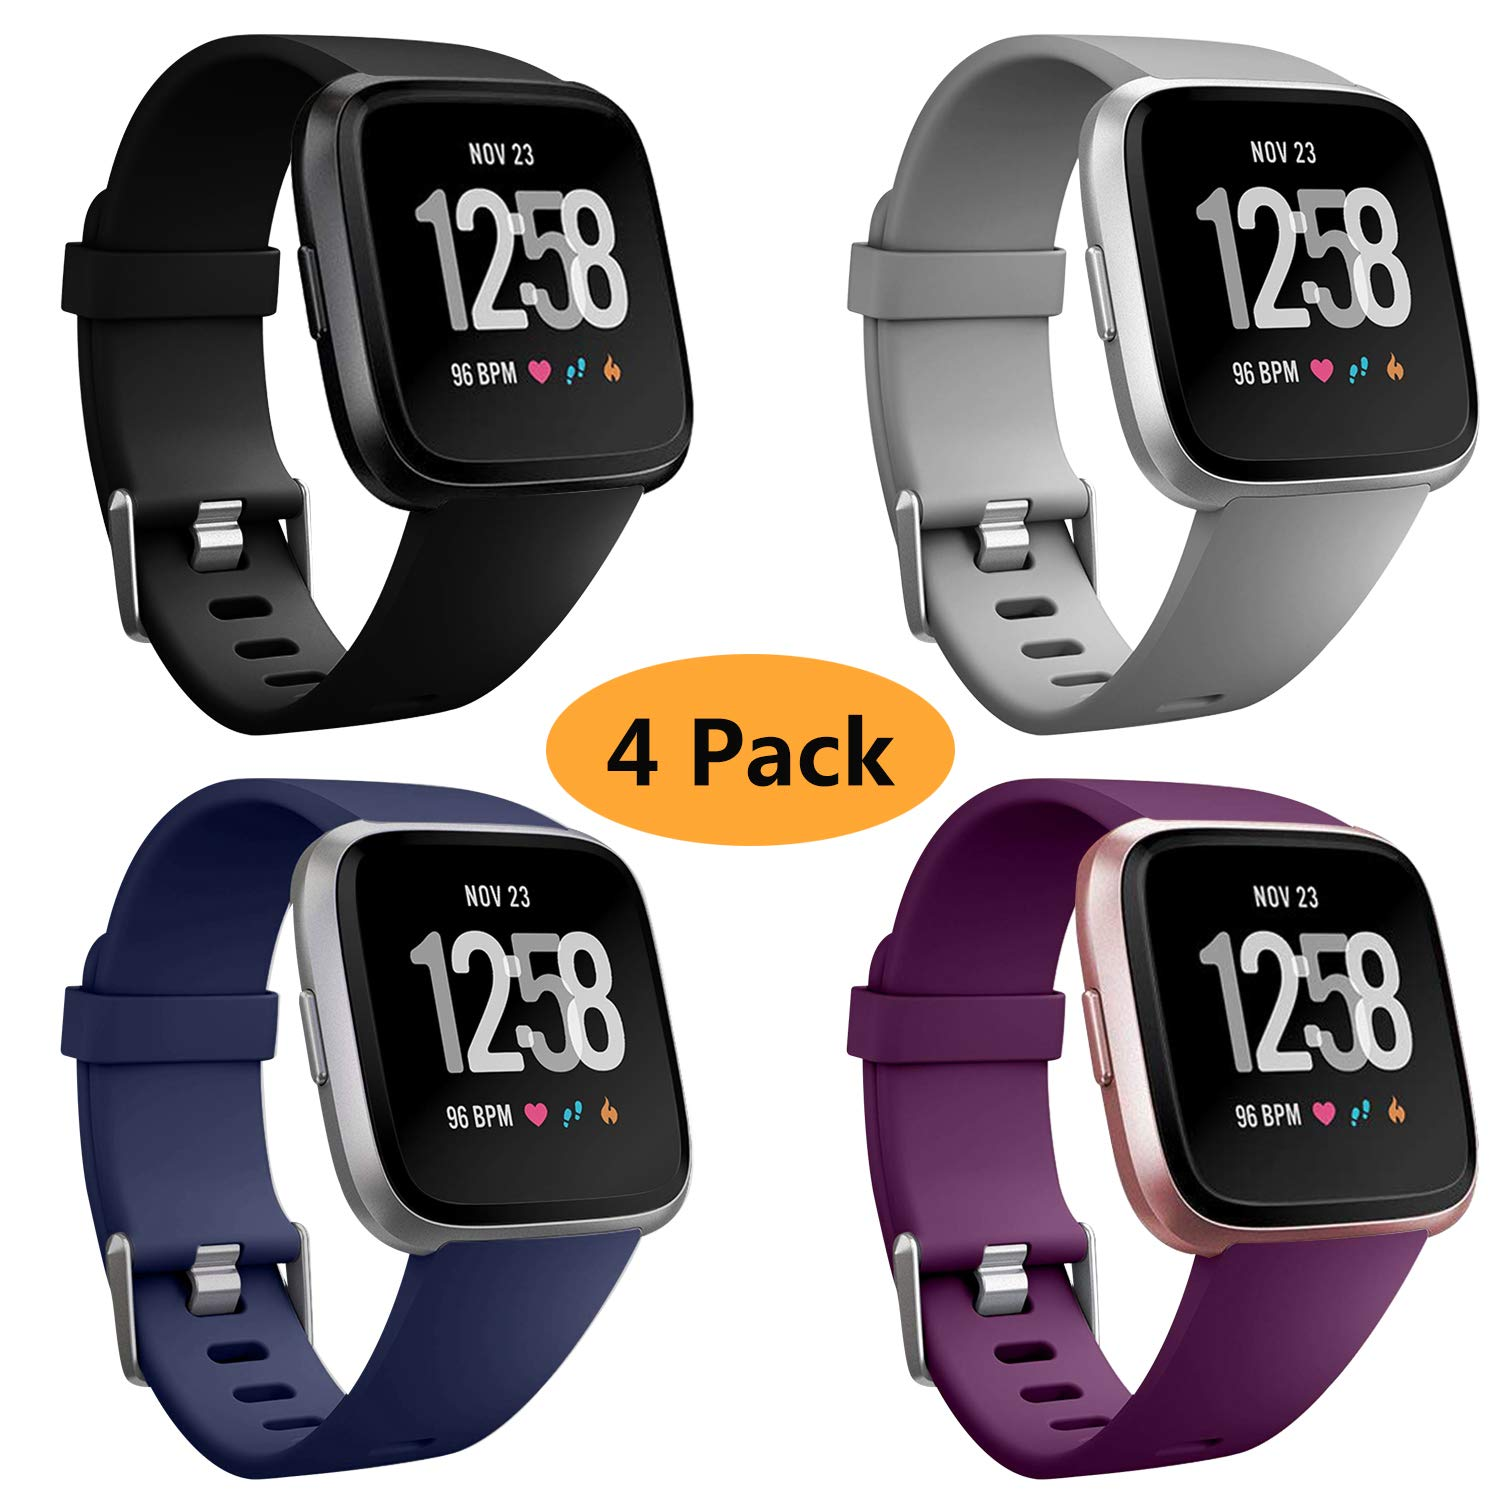 Neitooh 4 Packs Bands Compatible with Fitbit Versa/Versa 2/Fitbit Versa Lite for Women and Men, Classic Soft Silicone…